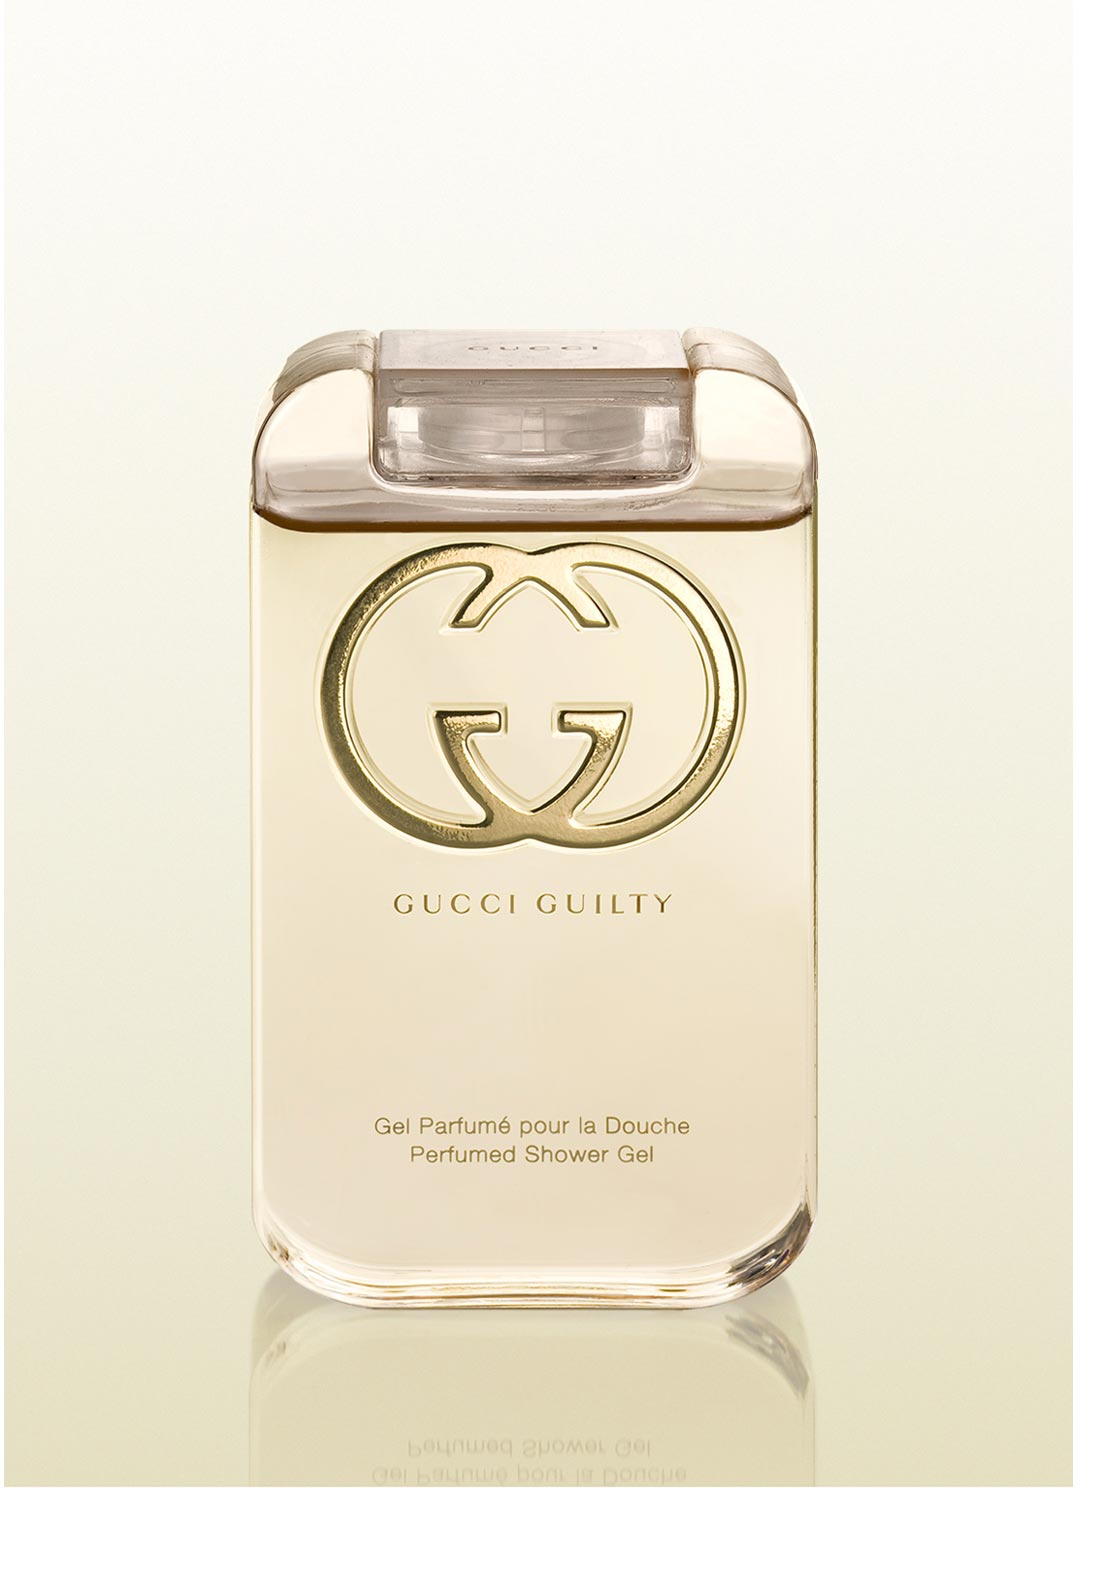 Gucci Guilty Perfumed Shower Gel, 200ml